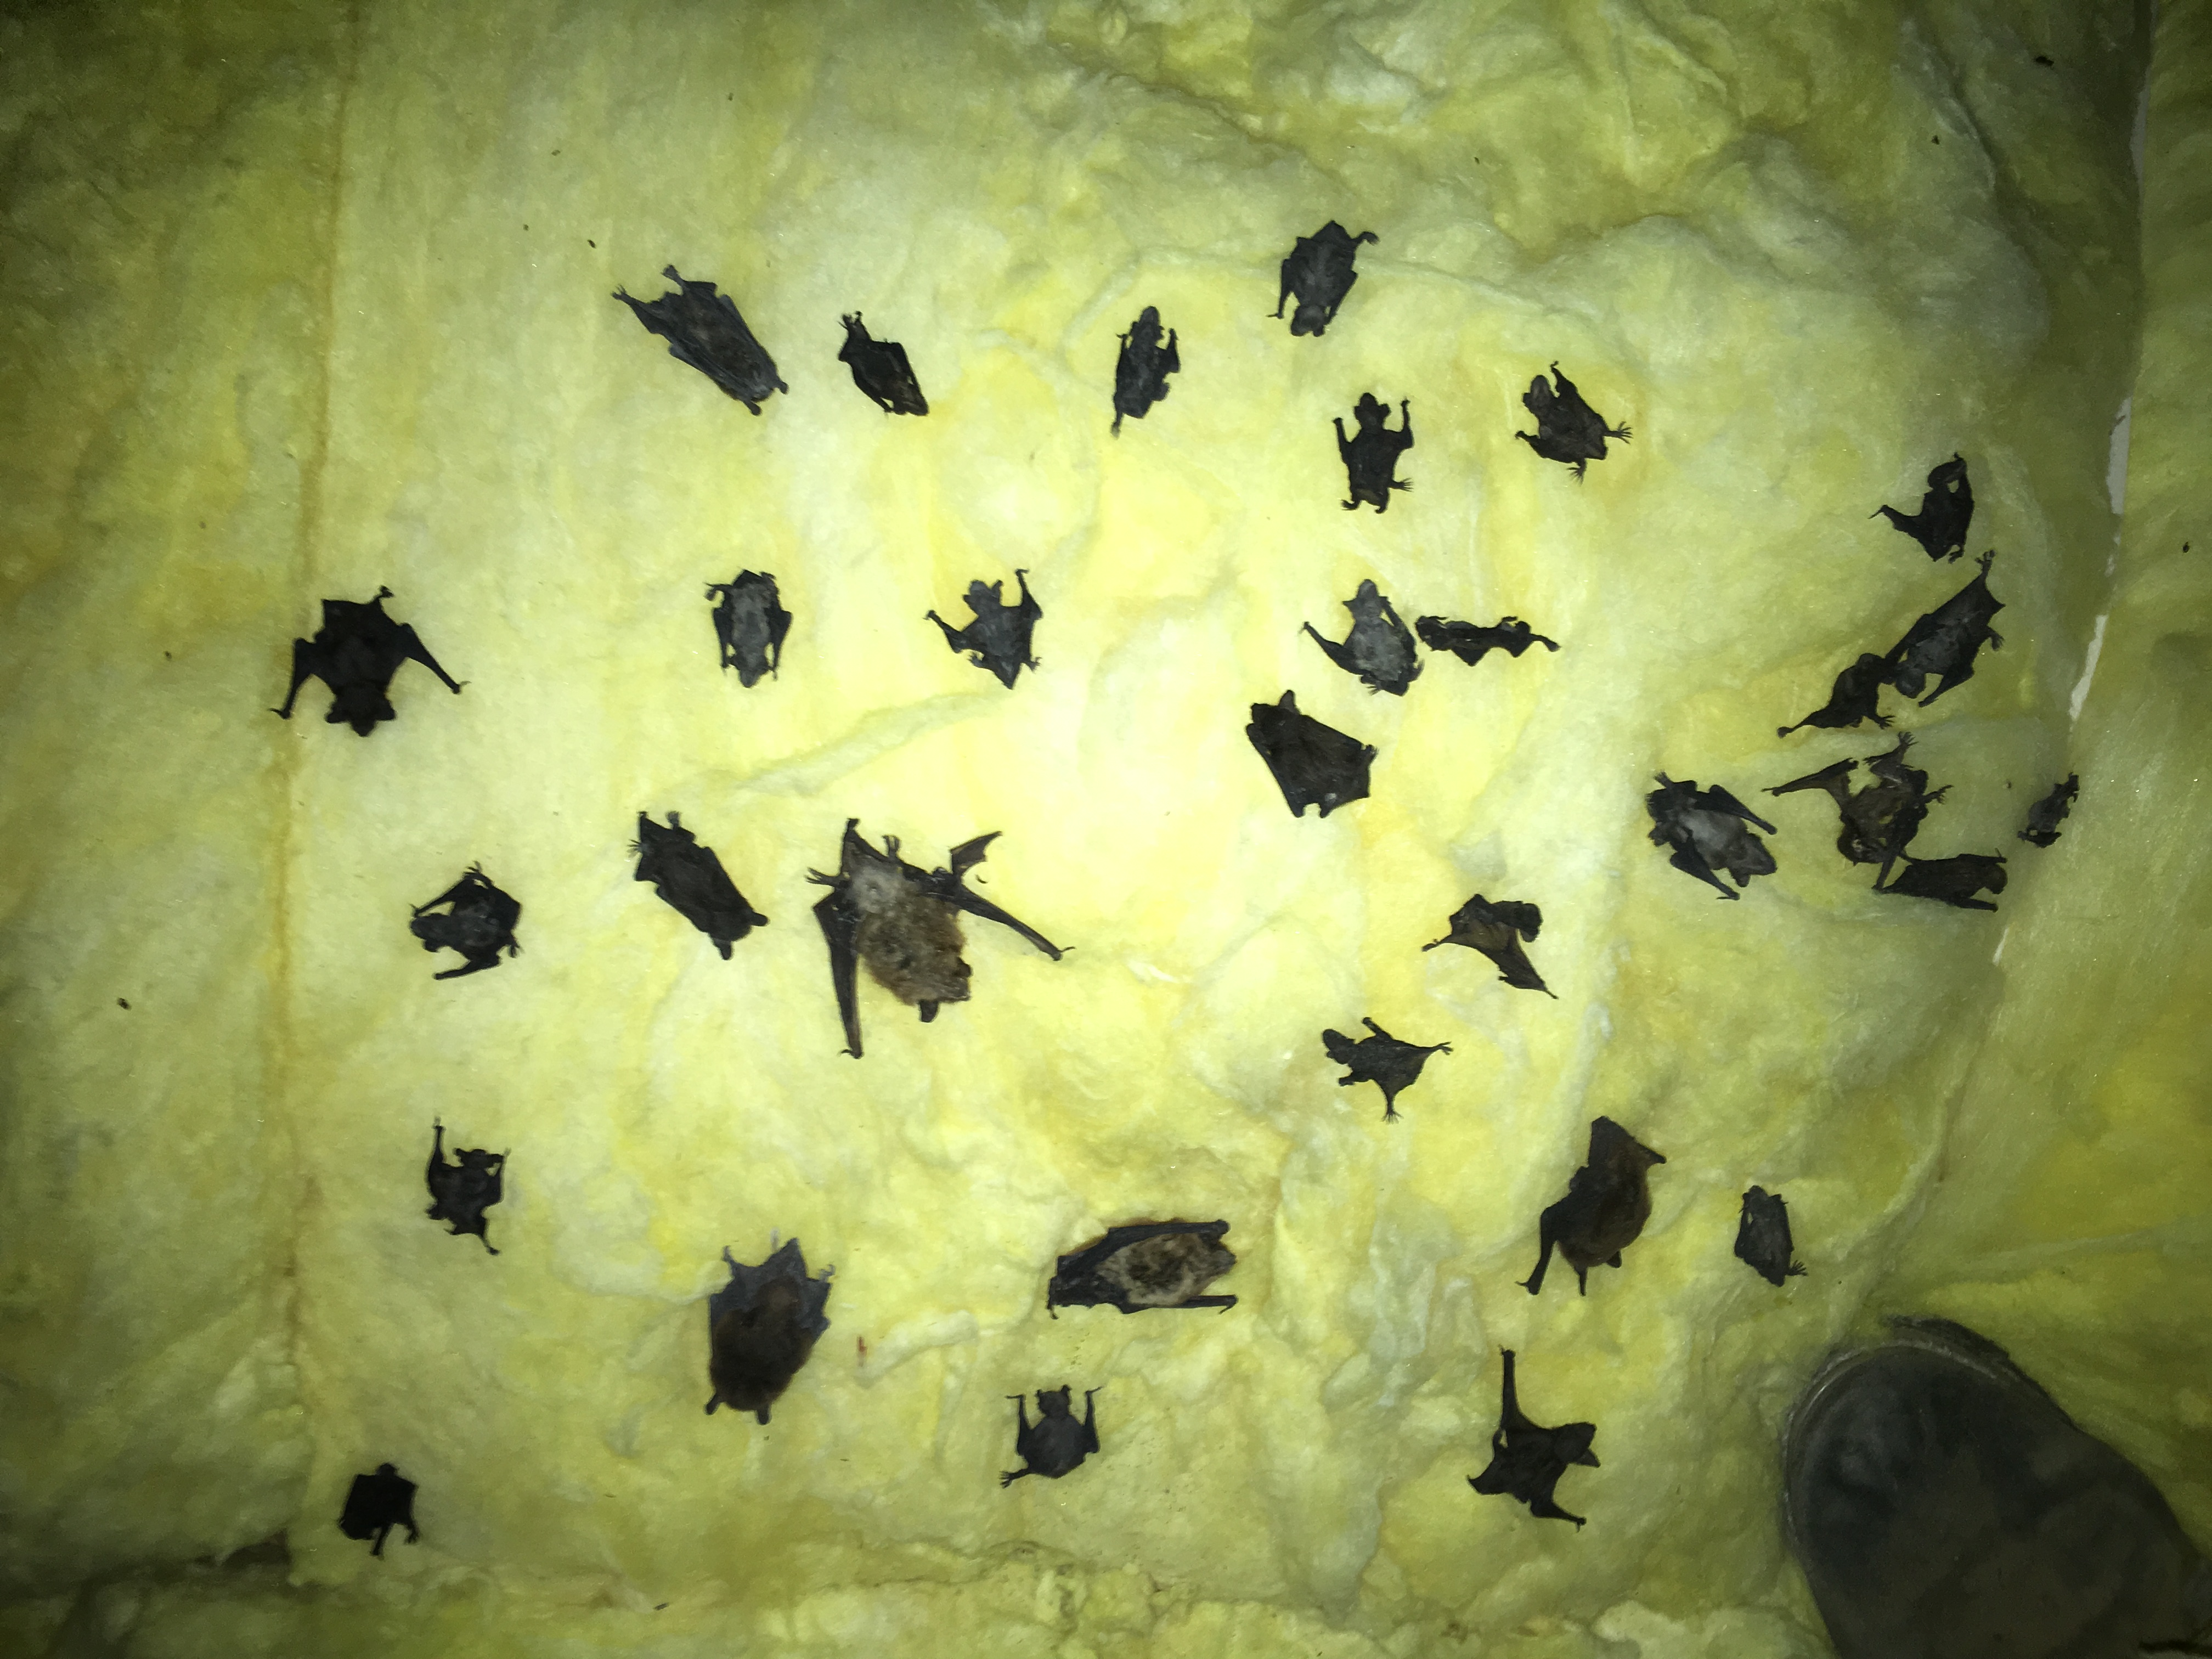 Bats on Attic Insulation